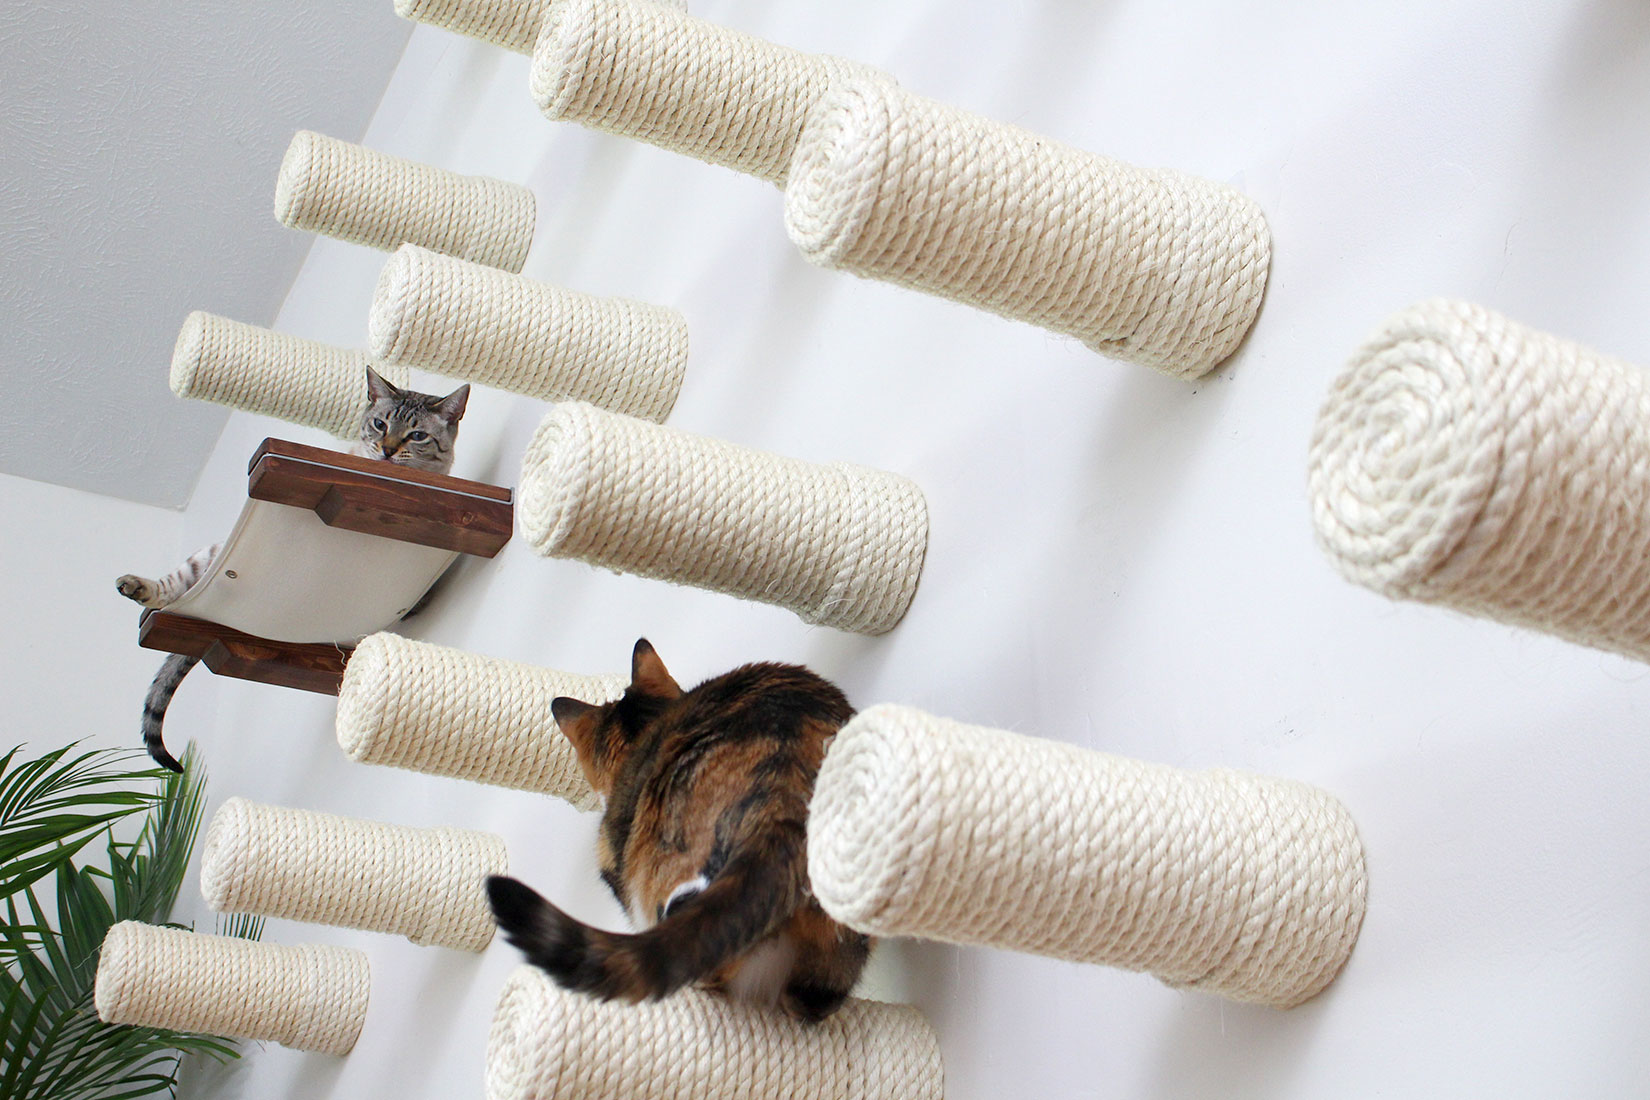 Wall Of Sisal Posts ⋆ Catastrophic Creations